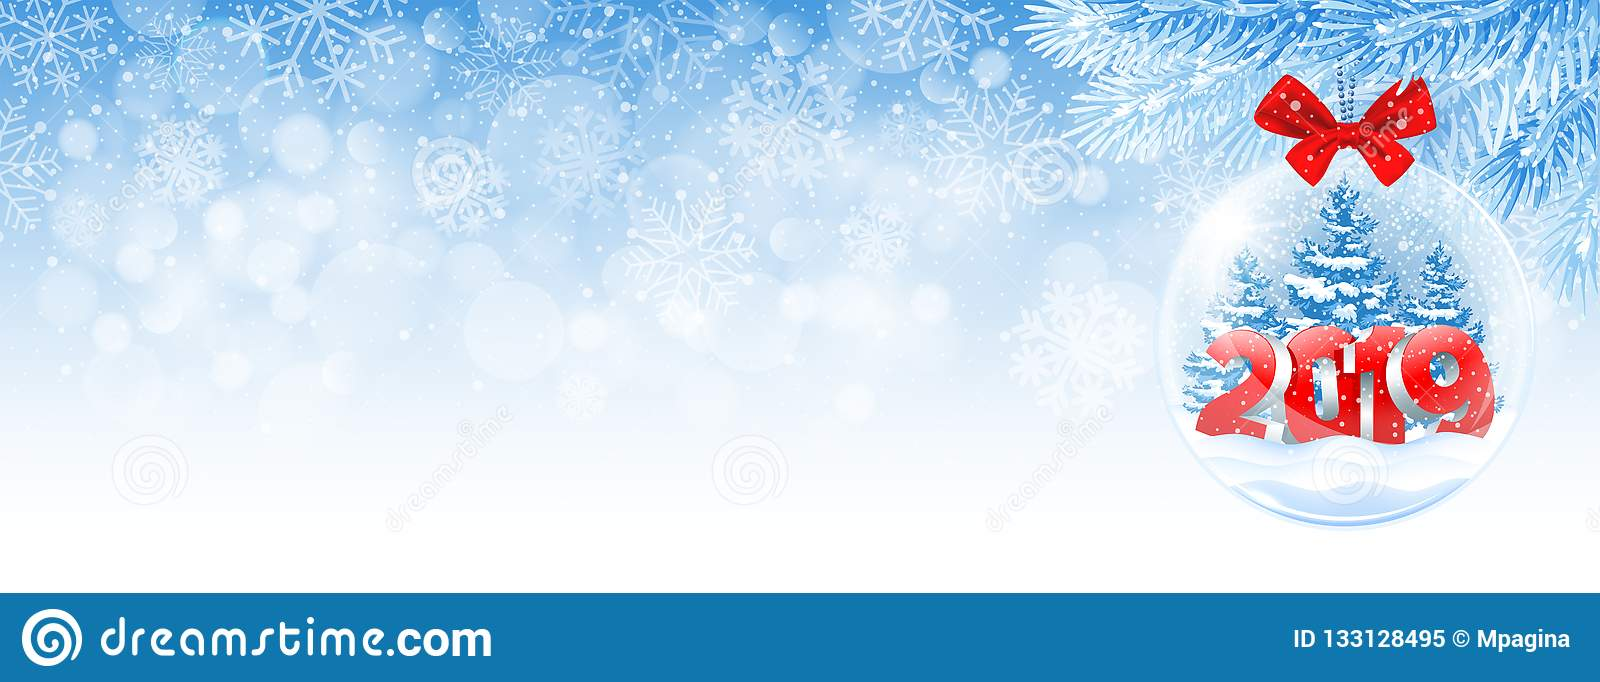 Christmas Facebook Cover Photo.Christmas And New Year Facebook Cover Stock Vector